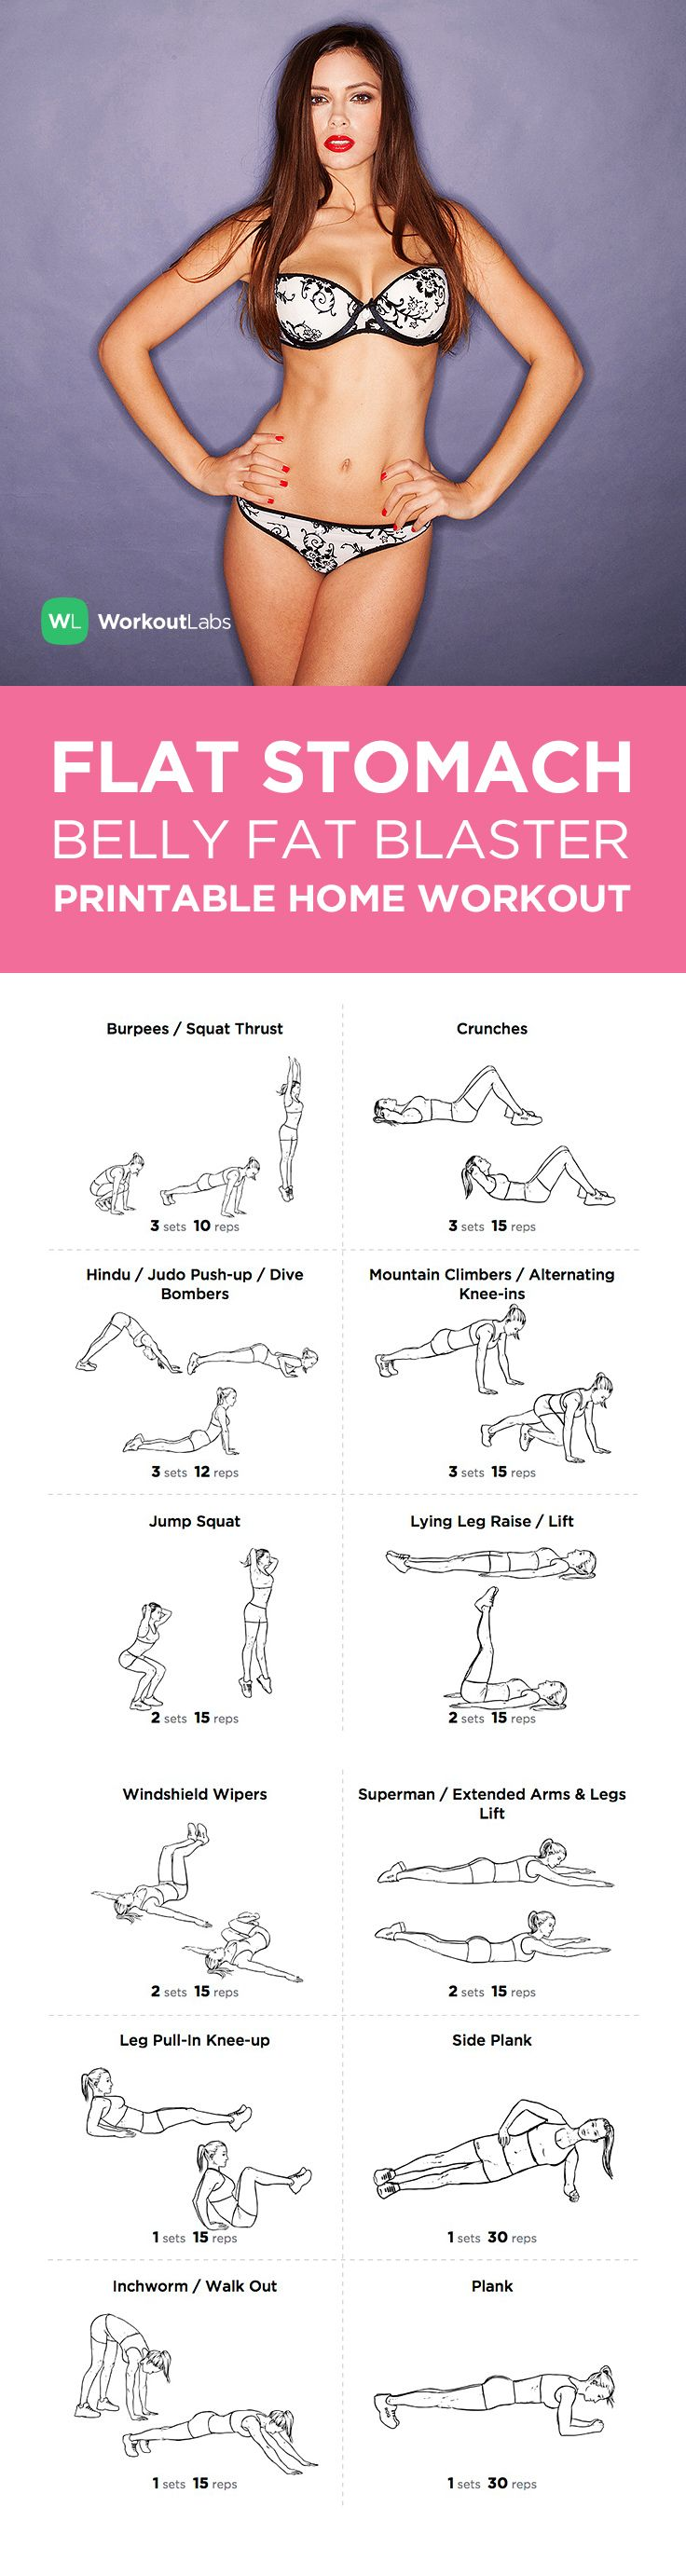 The Flat Stomach Belly Fat Blaster Printable Exercise Plan – Looking to firm and flatten your stomach for the summer months ahead? This workout will do all that and burn fat at once